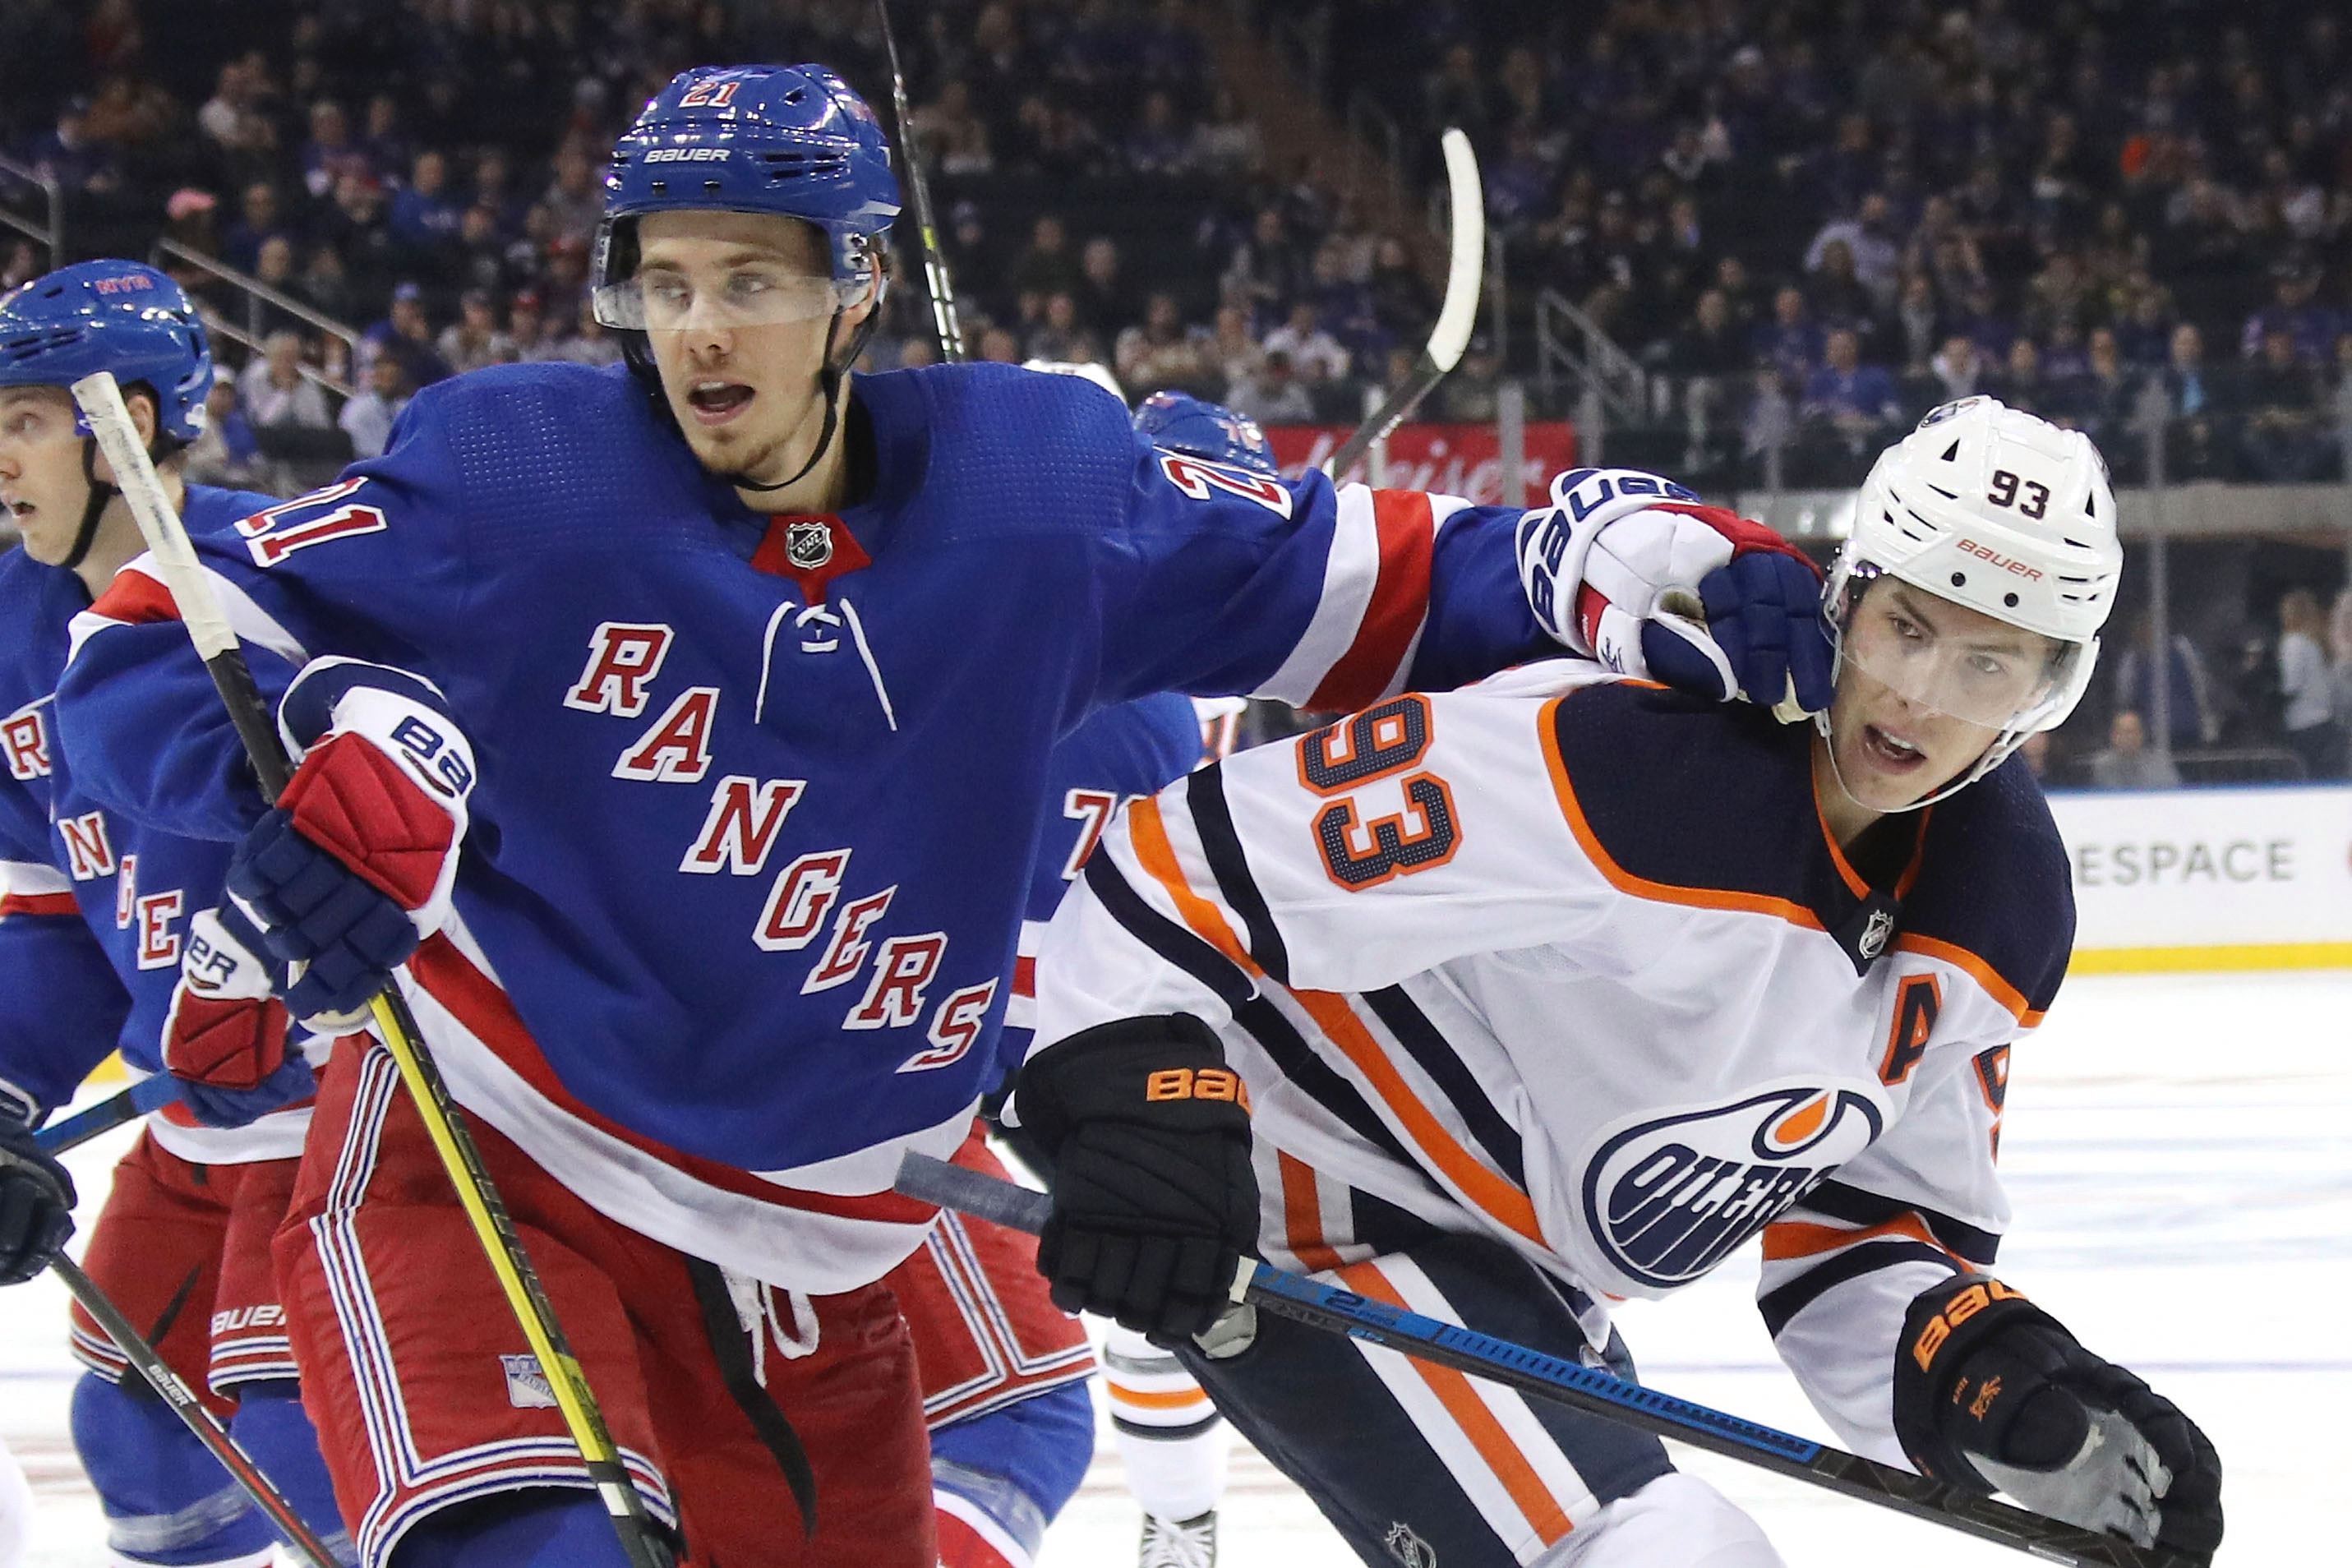 Rangers aren't done reshuffling their lines